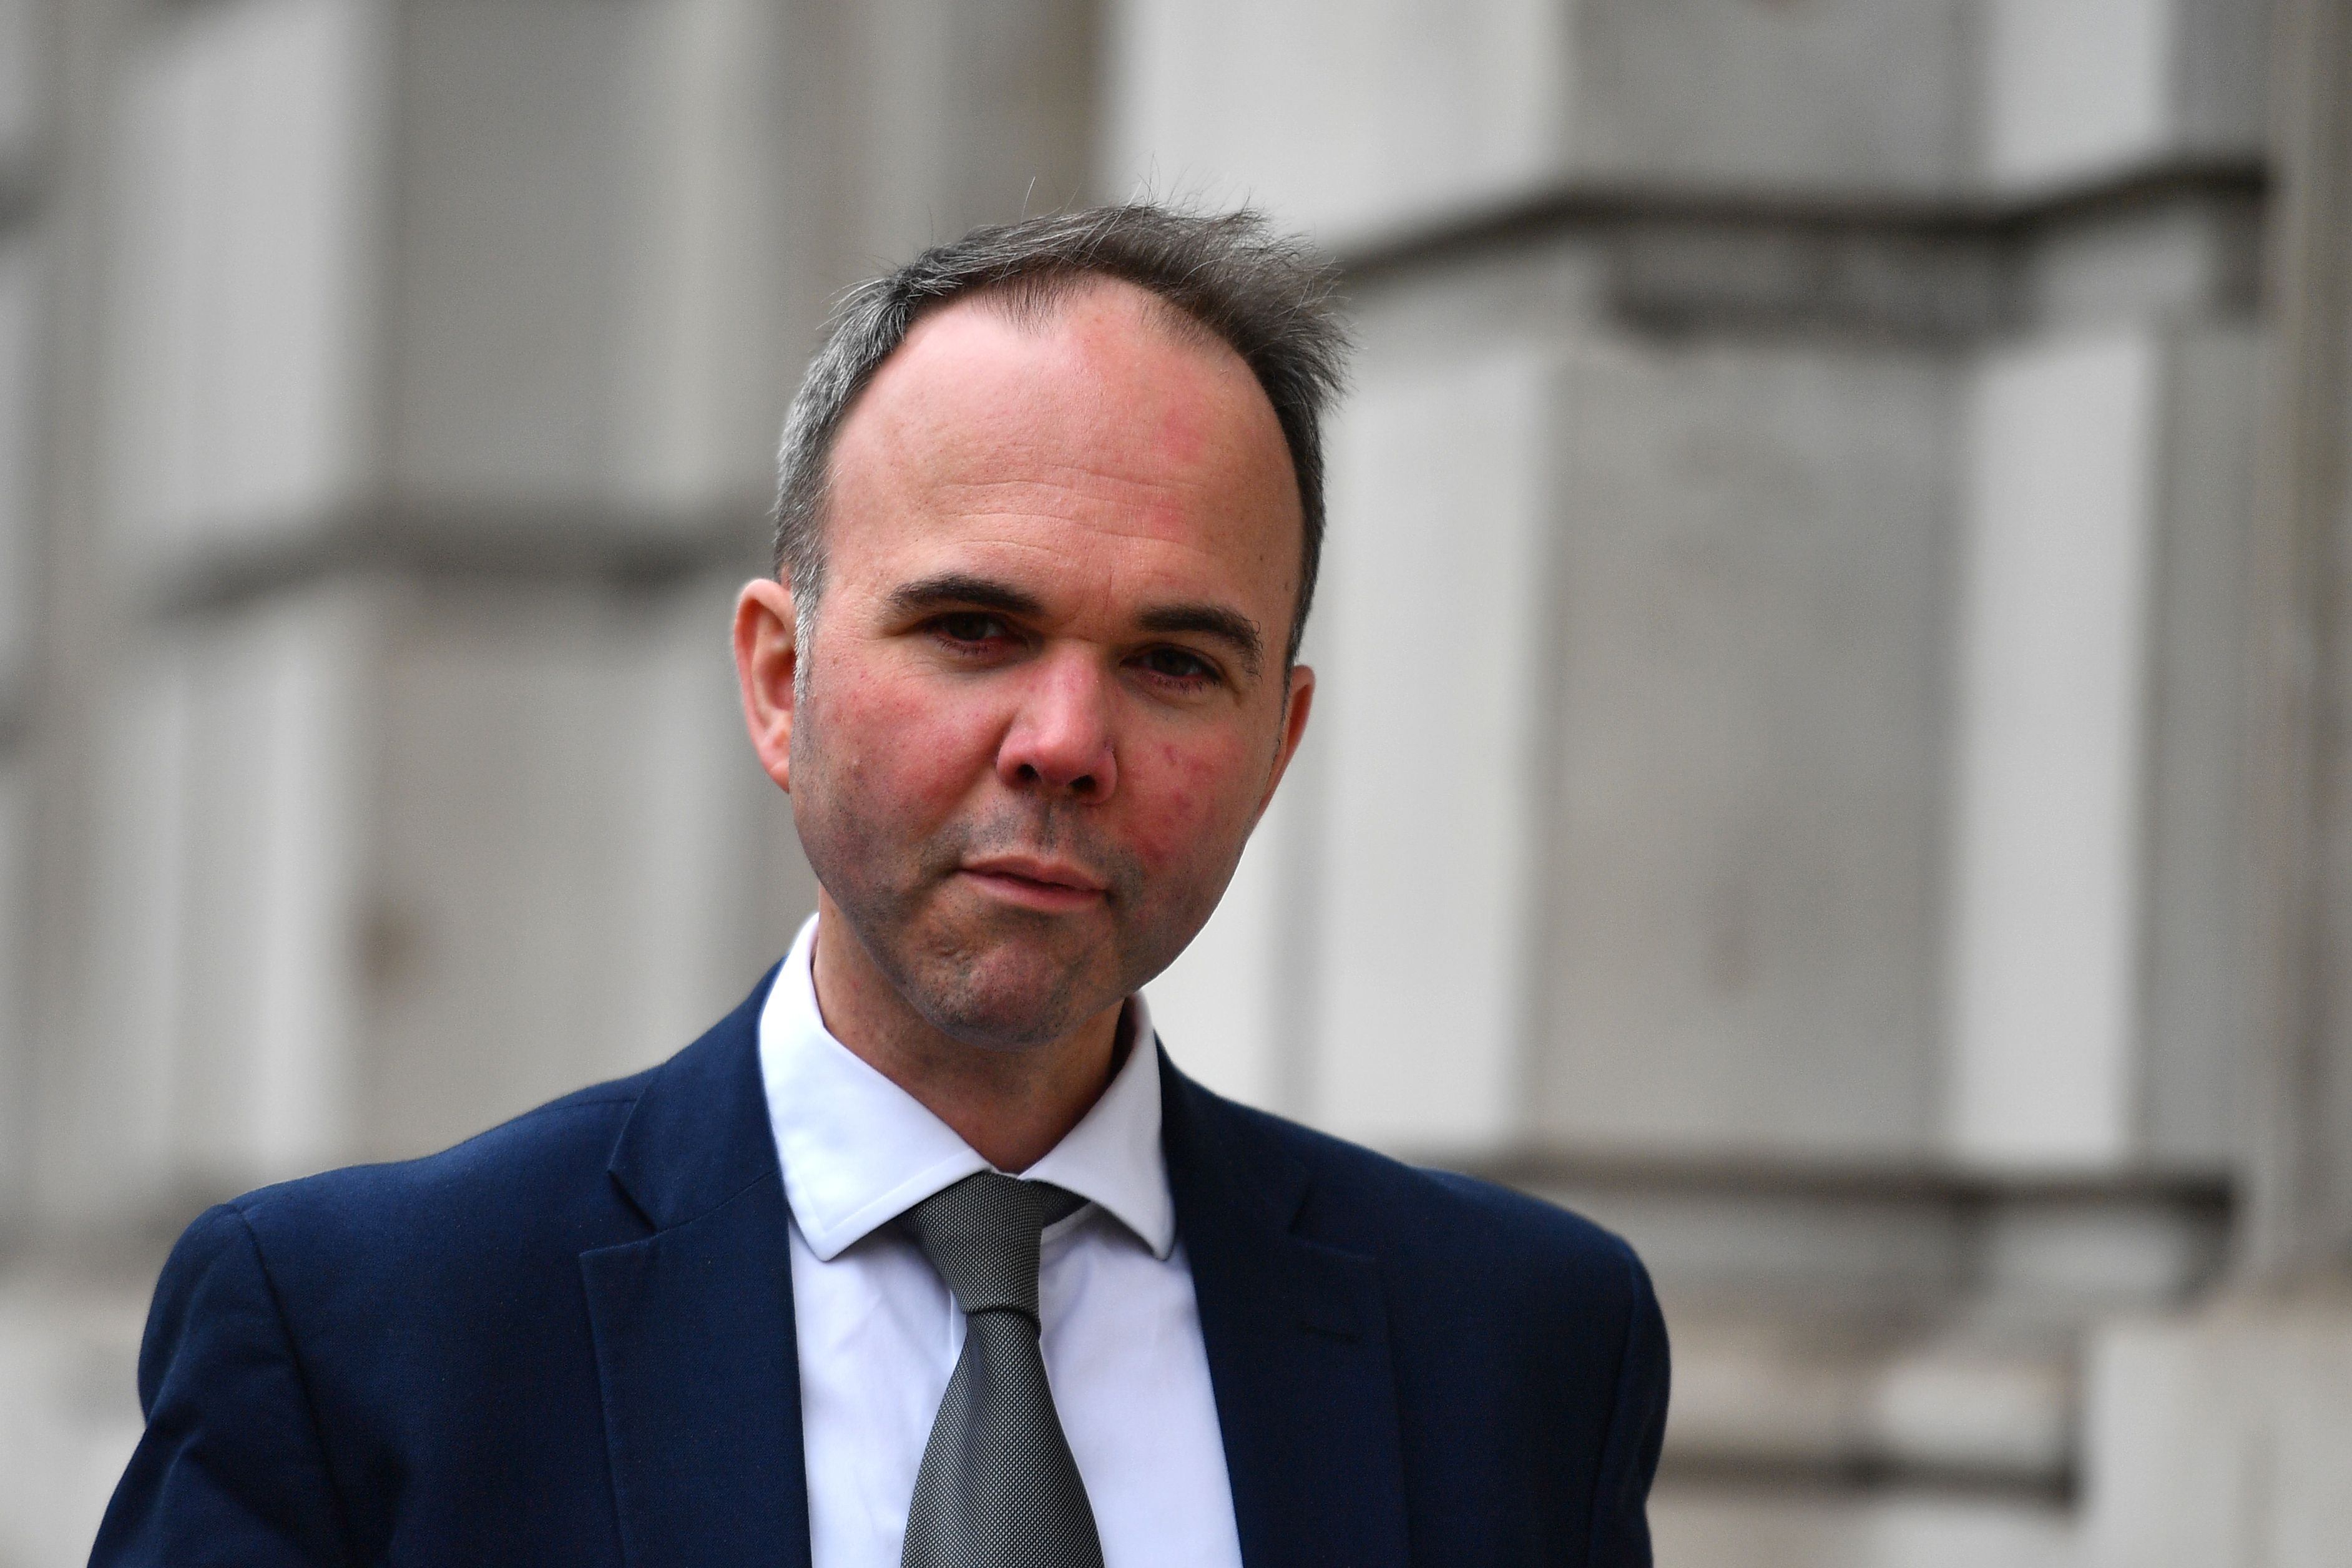 """Number 10 Chief of Staff Gavin Barwell arrives at the cabinet office in central London on April 8, 2019. - Prime Minister Theresa May will today press ahead with her bid for a Brexit """"compromise"""" with the opposition despite a backlash from her own party, as she attempts to prevent Britain crashing out of the European Union this week. (Photo by Daniel LEAL-OLIVAS / AFP)        (Photo credit should read DANIEL LEAL-OLIVAS/AFP via Getty Images)"""